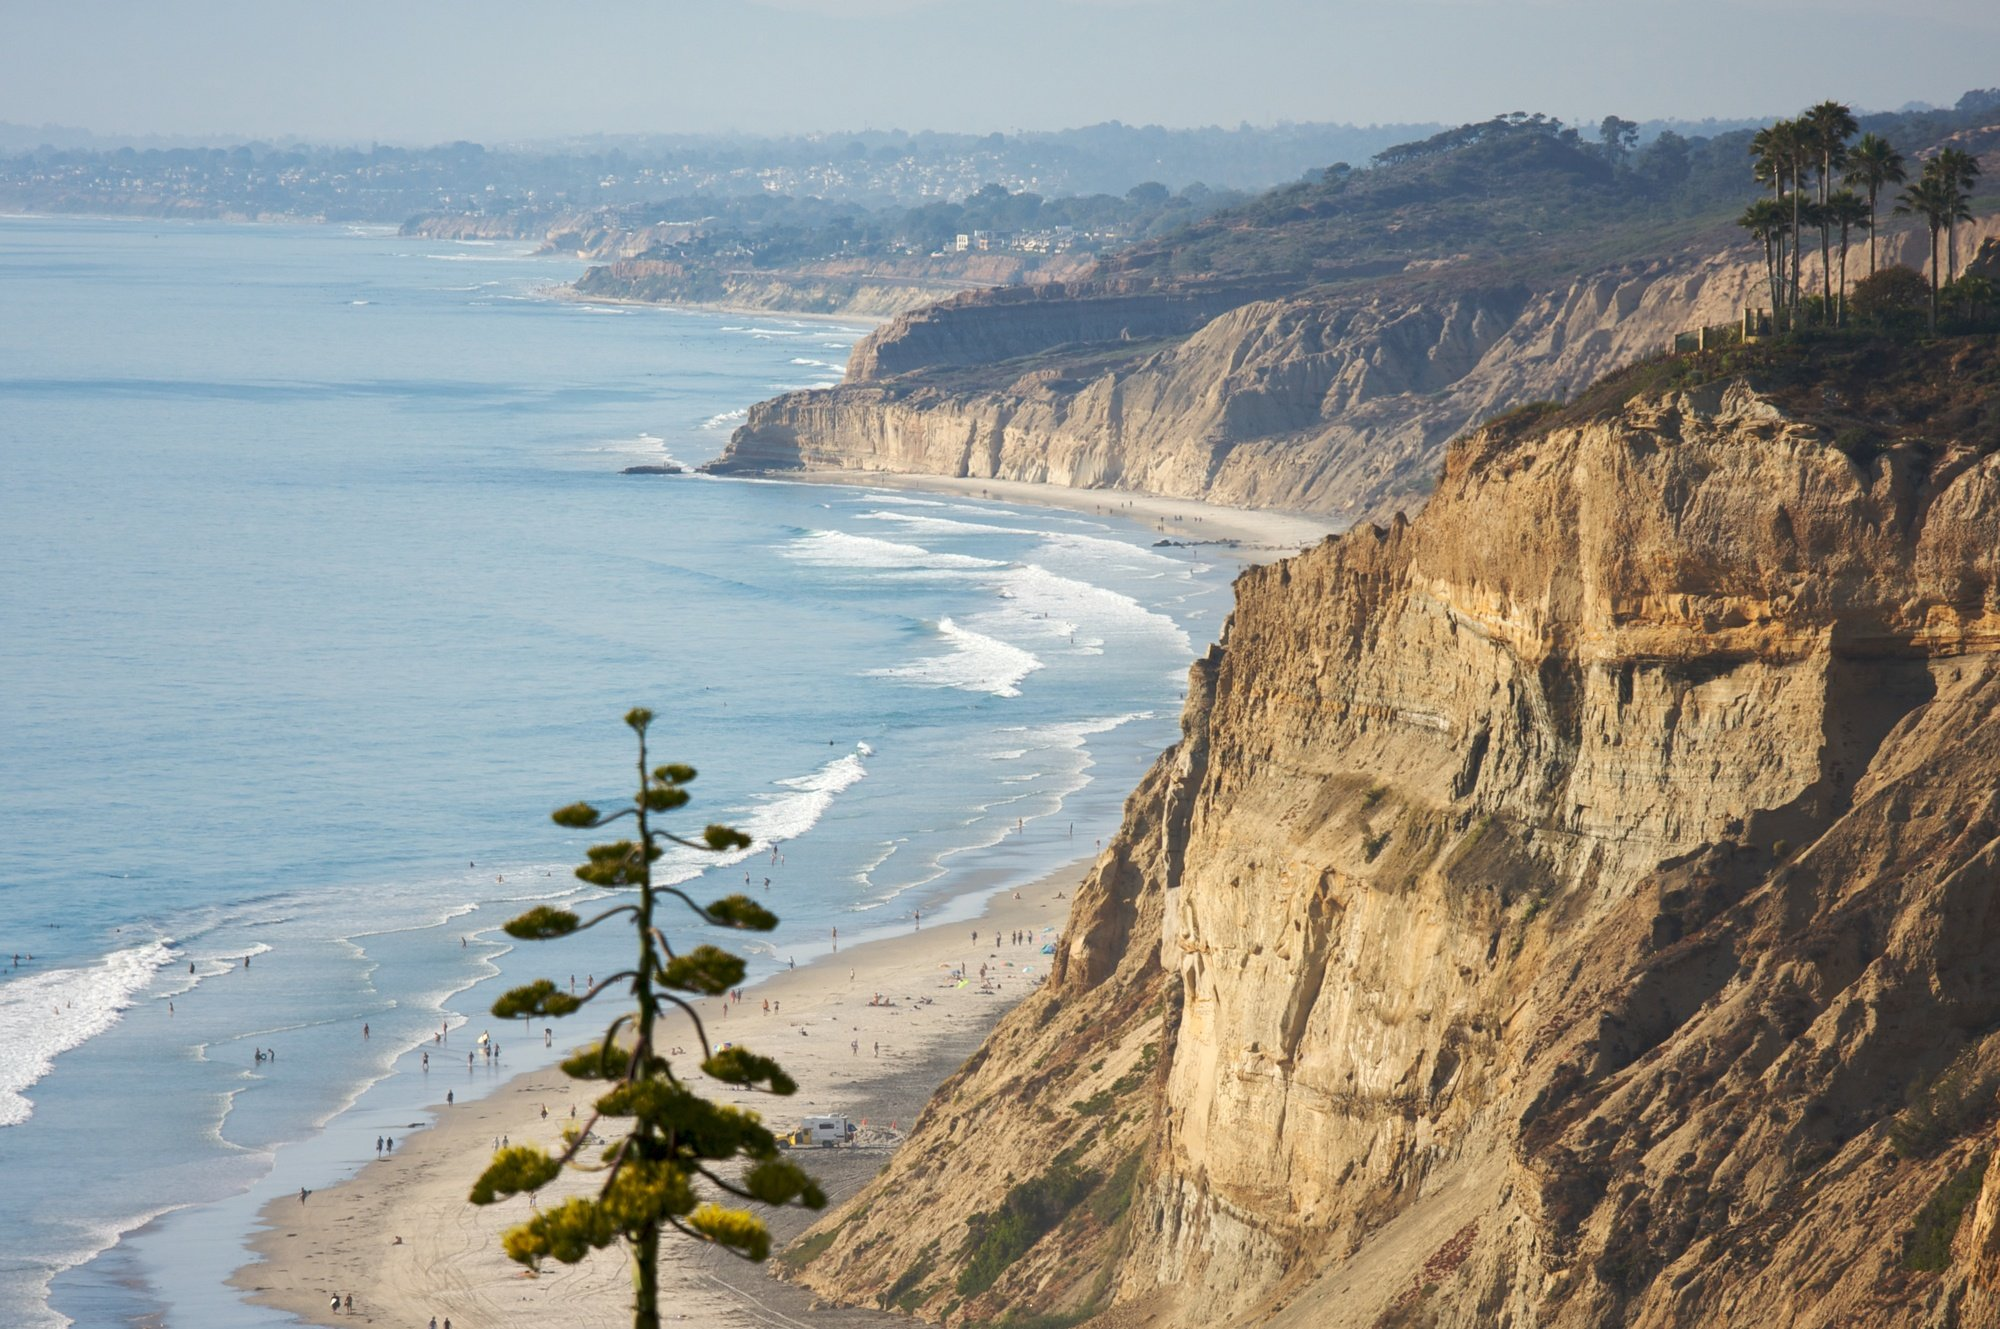 Torrey Pines State Natural Reserve in San Diego County